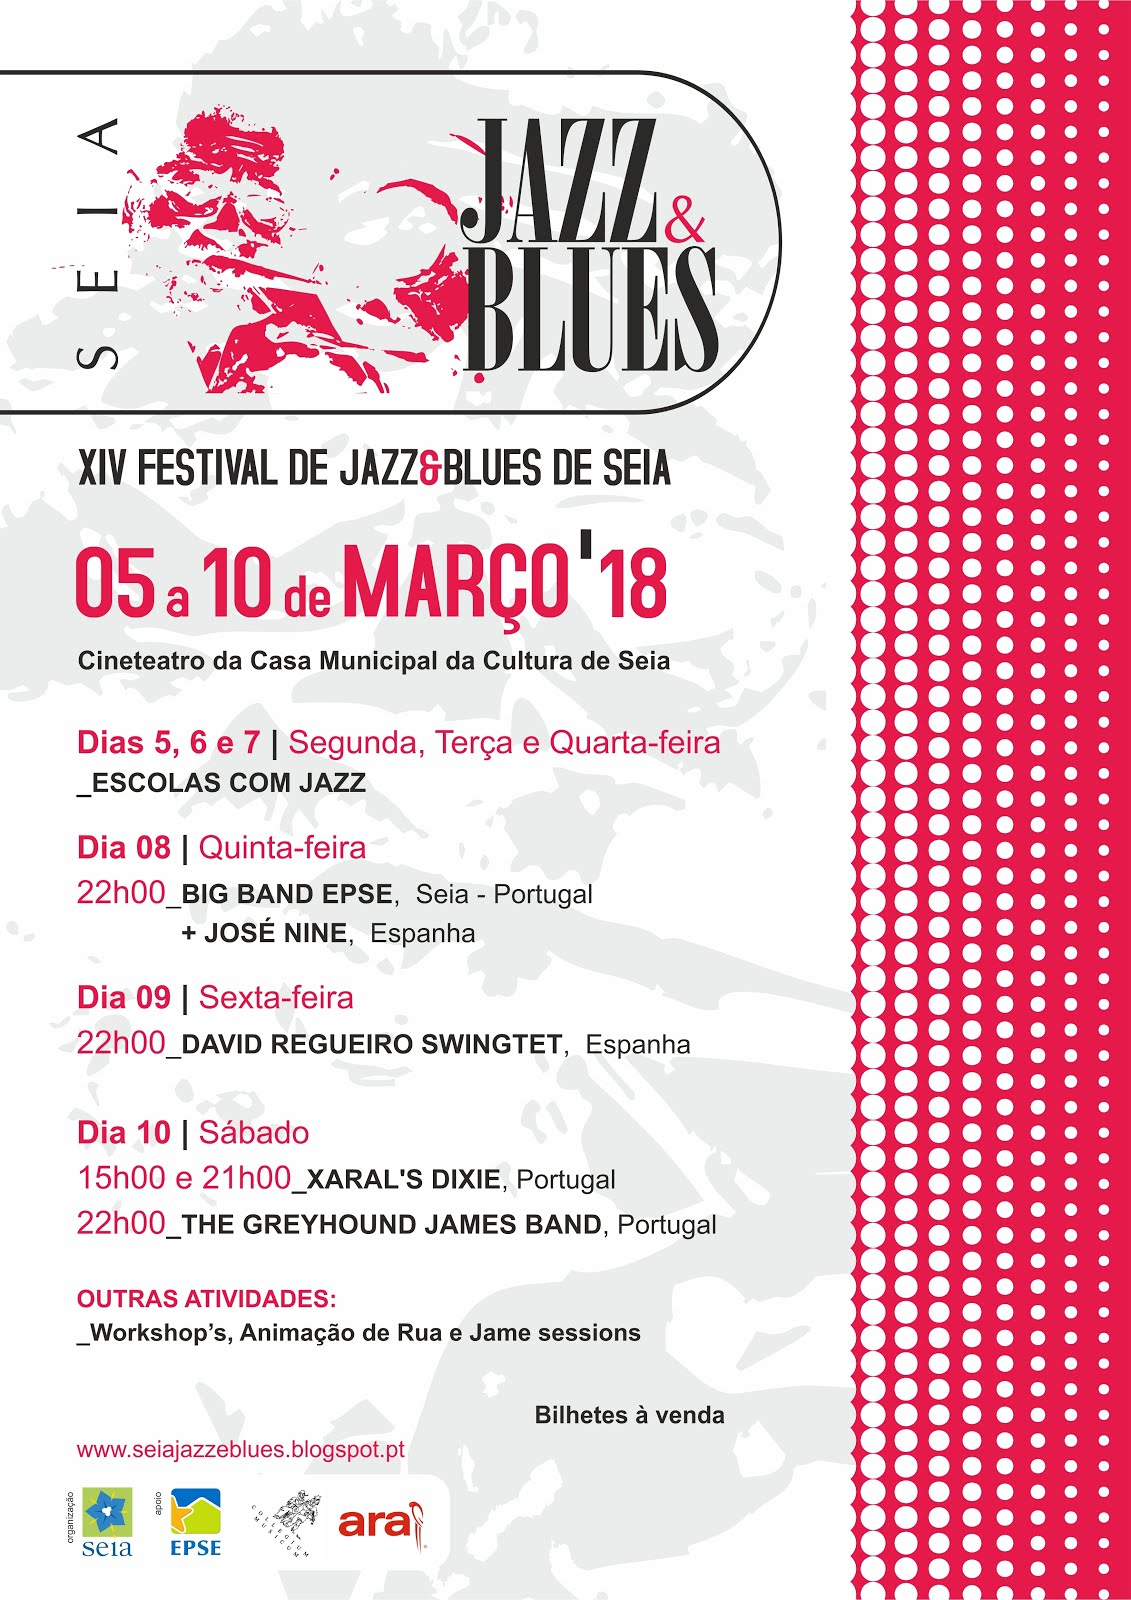 XIV SEIA JAZZ & BLUES